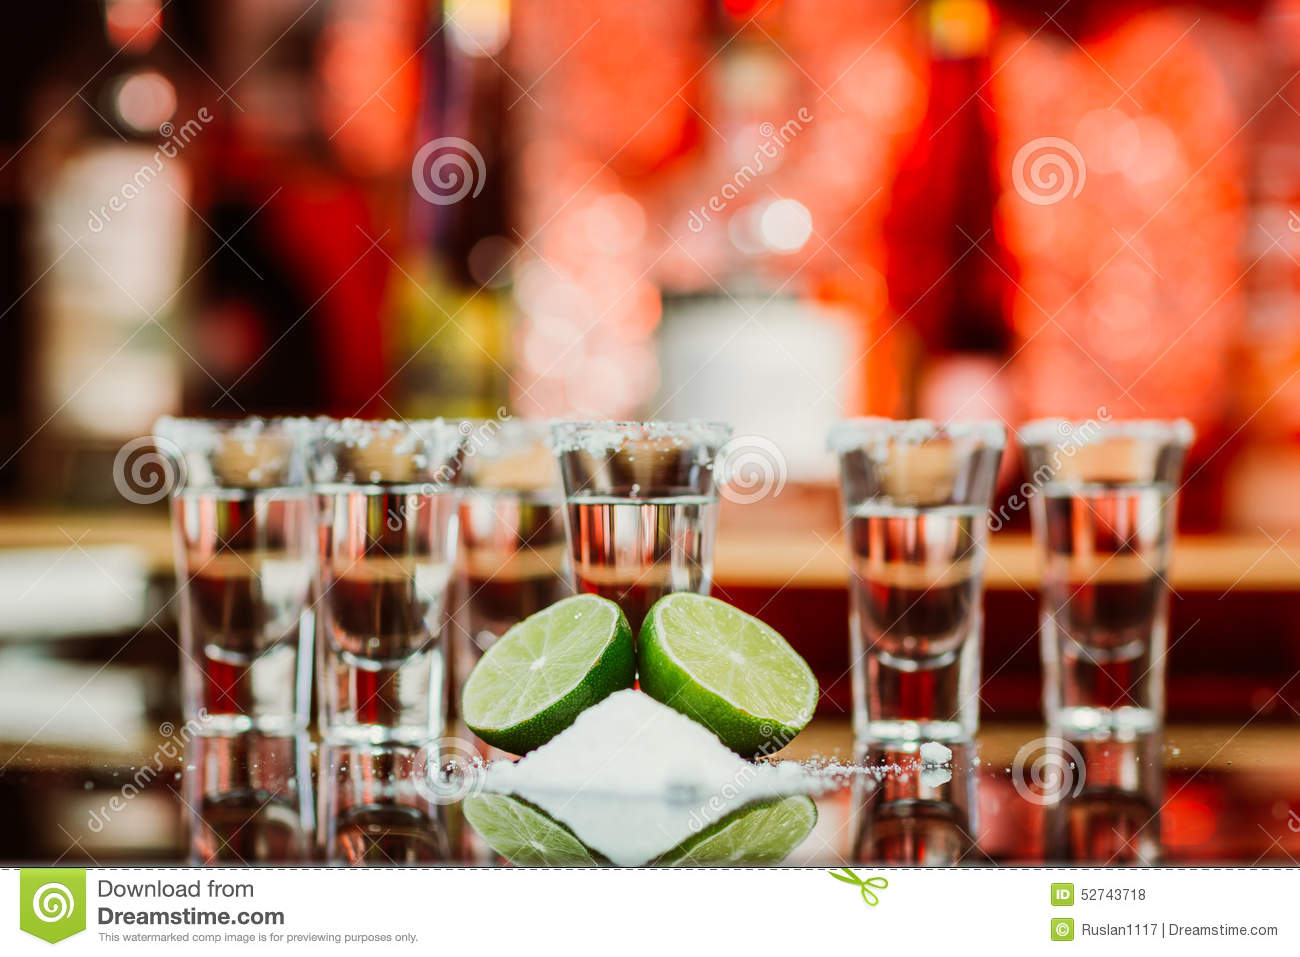 Two shots of tequila with lime and salt on a wooden table bar on the background of bright lights of the bar